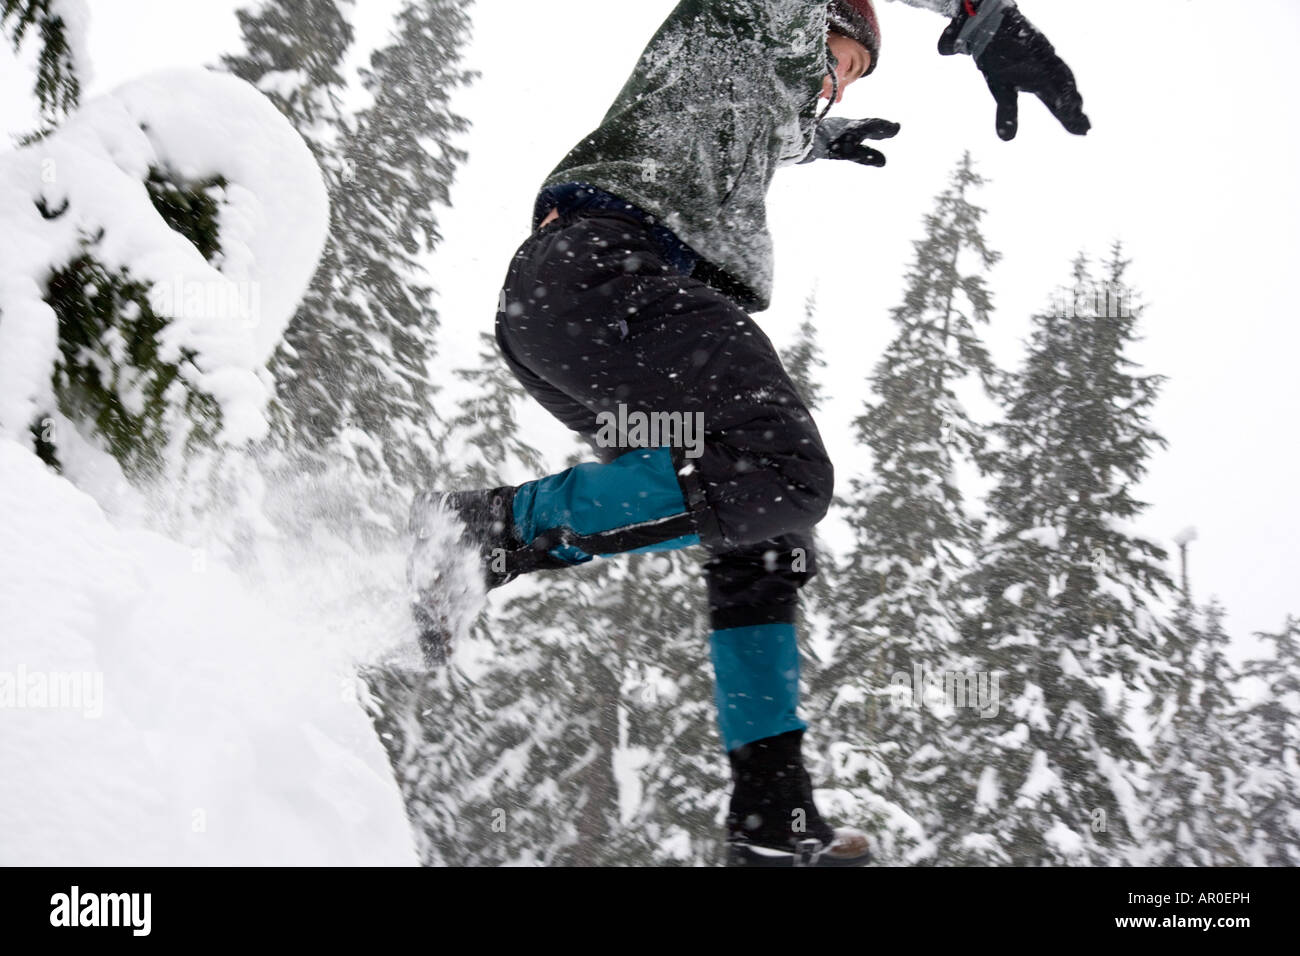 A male snowshoer jumps off a snow mound. - Stock Image